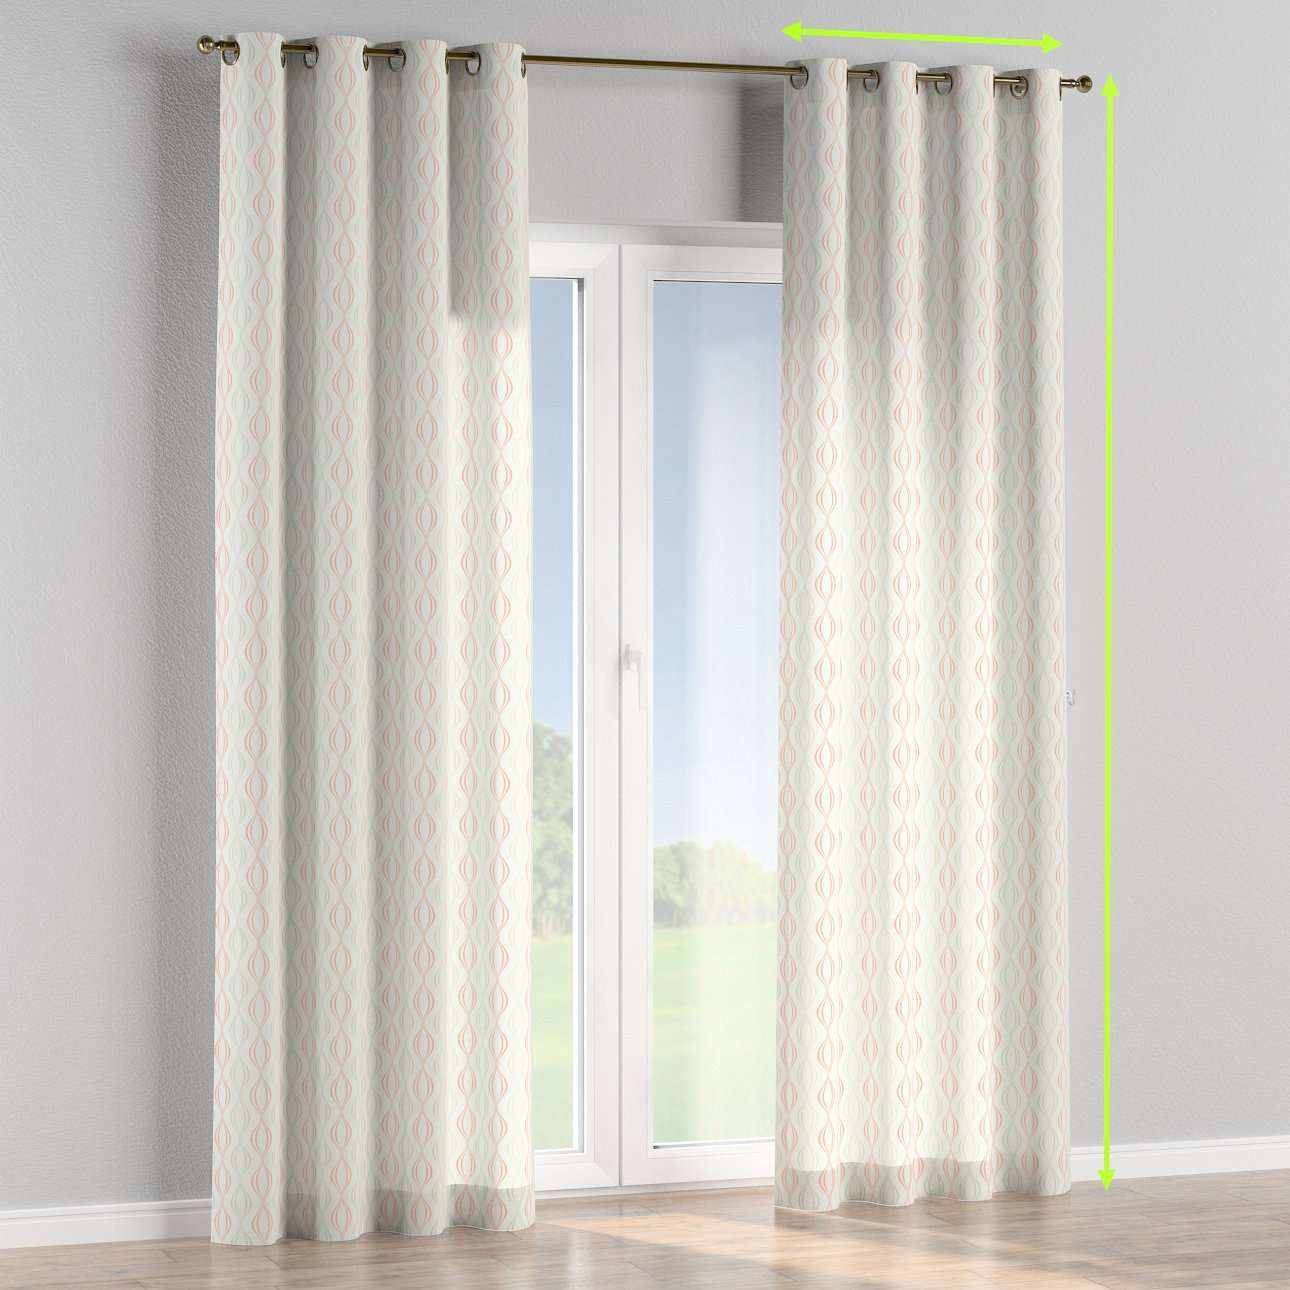 Eyelet lined curtains in collection Geometric, fabric: 141-49